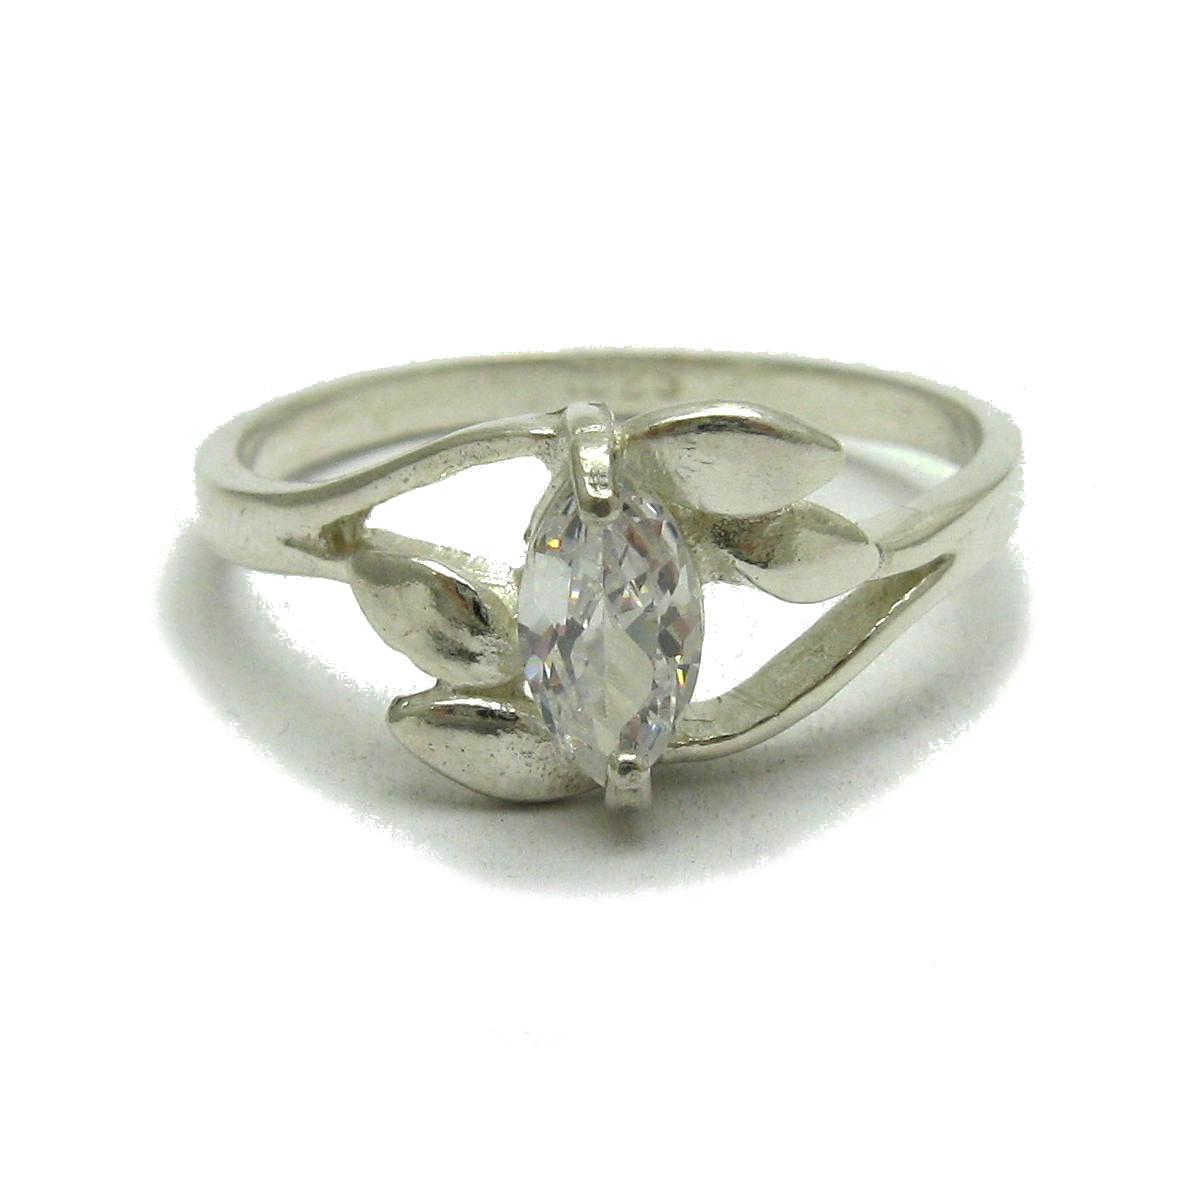 Silver ring - R001743